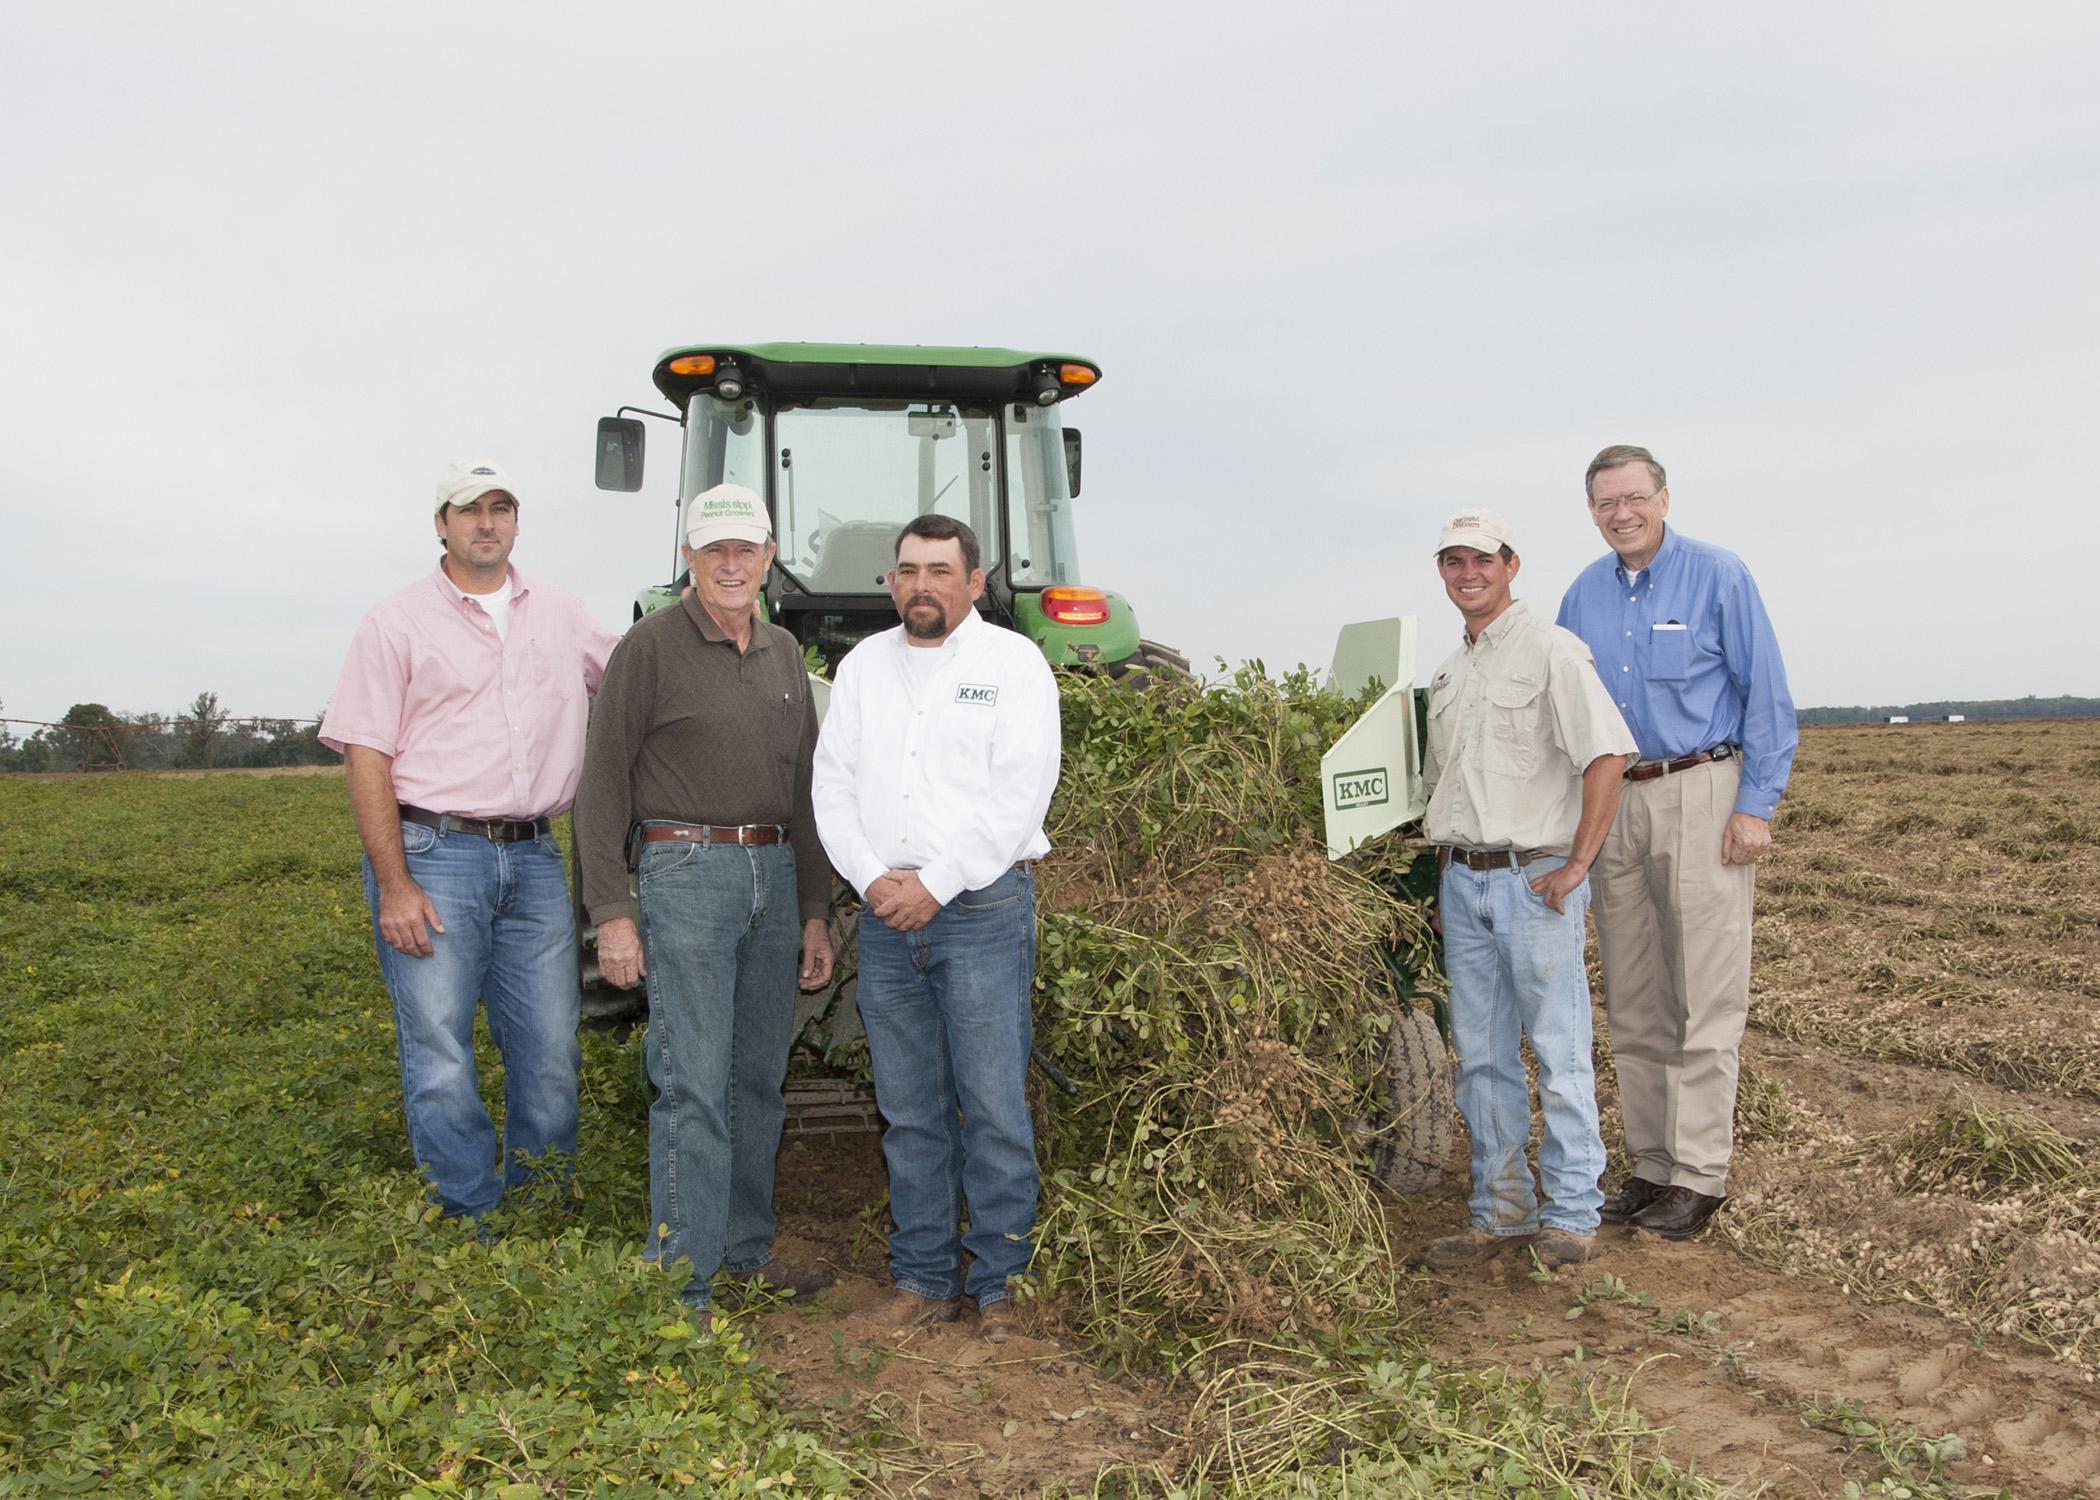 A two-row digger shaker donated to the Mississippi Peanut Growers Association by Kelley Manufacturing Company was demonstrated recently at Parrish Farms in Holmes County. On hand for the demonstration were, from left, Brad Burgess, Mississippi State University's variety testing director; Malcolm Broome, Mississippi Peanut Growers Association executive director; Keith Weeks, KMC territory manager; Daniel Parrish, MPGA board member; and Reuben Moore, Mississippi Agricultural and Forestry Experiment Station as